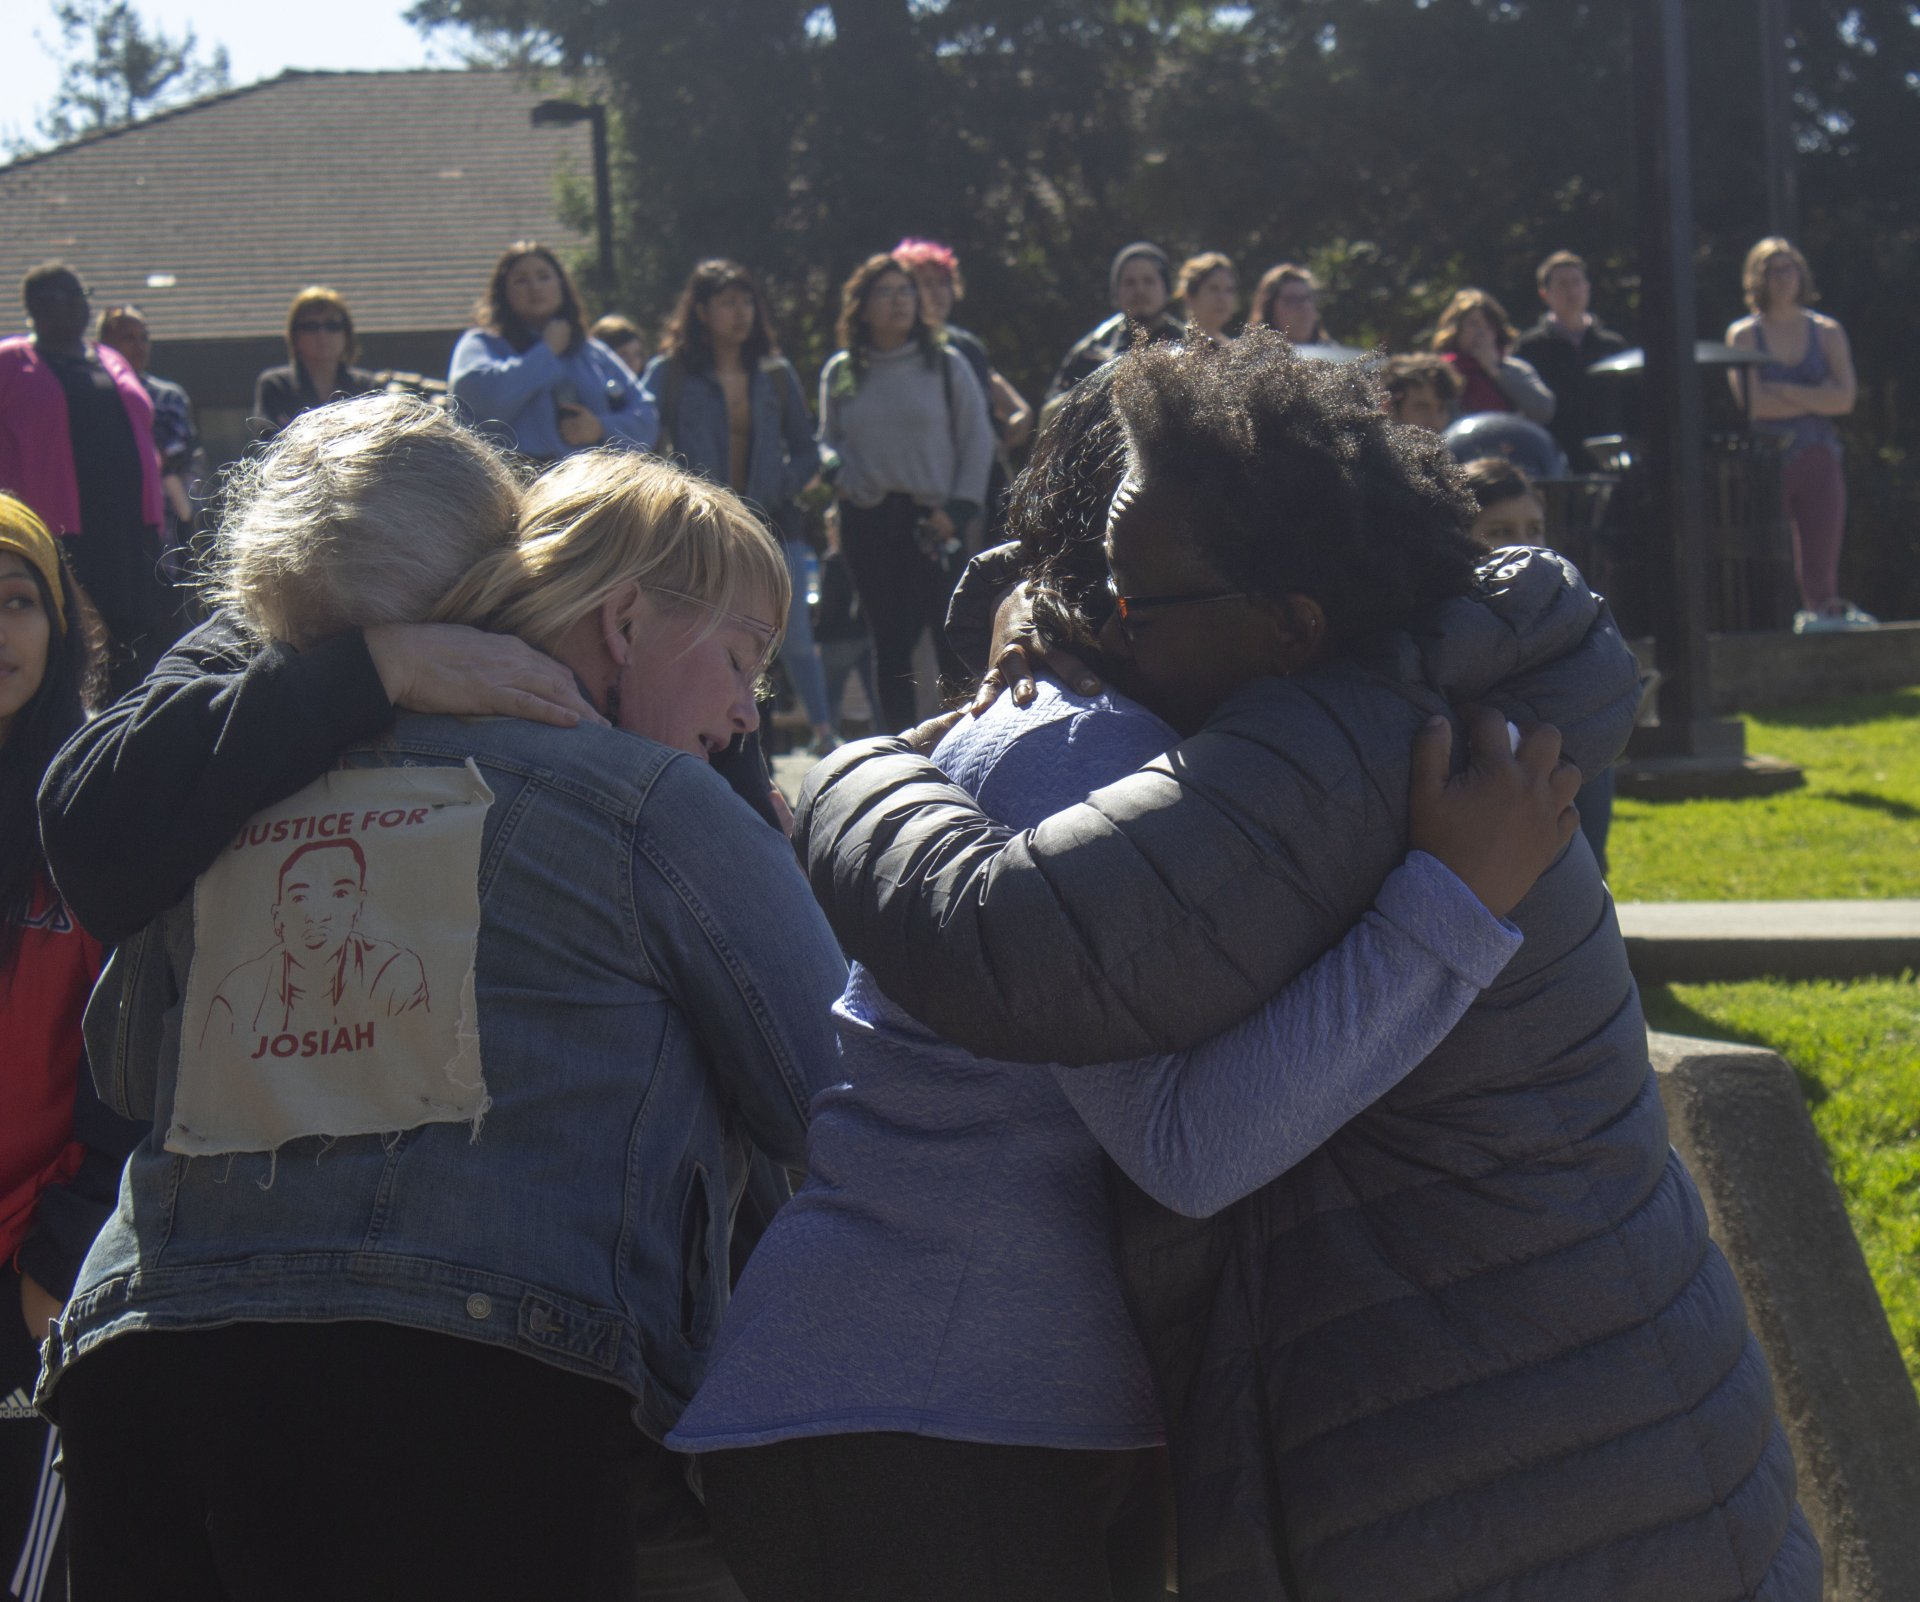 Lorna Bryant hugs Charmaine Lawson during the Gathering For Justice For Josiah event at HSU on Friday March 15.| Photo by T.William Wallin